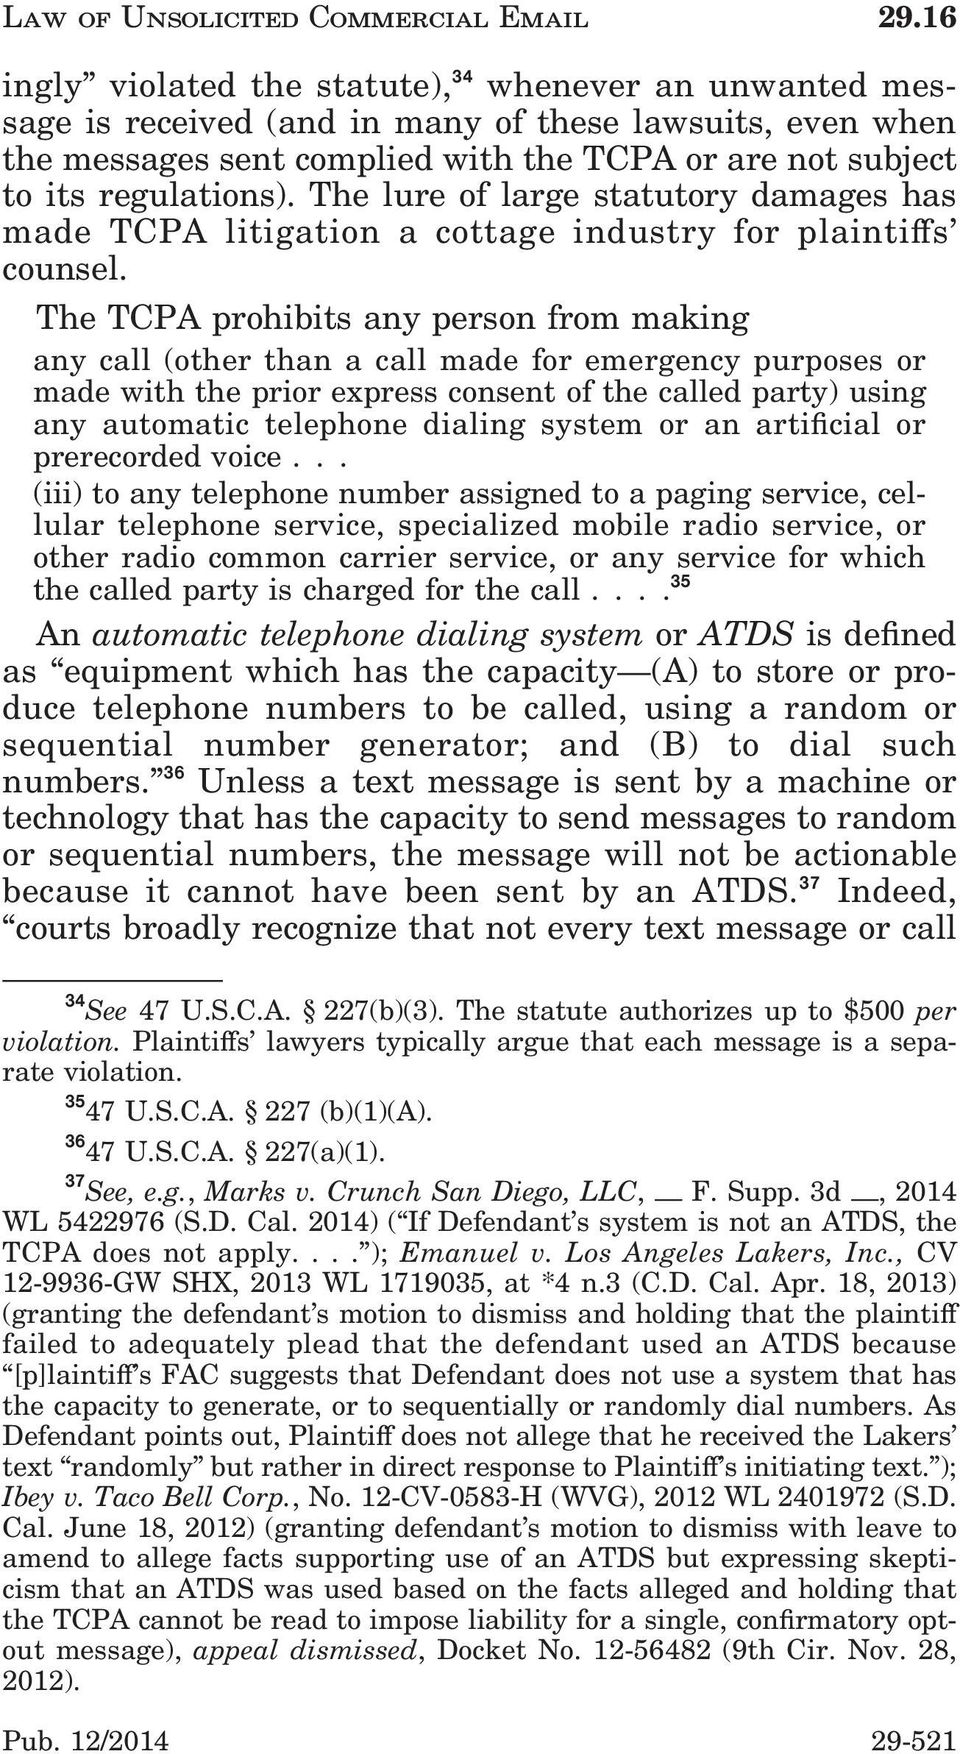 The lure of large statutory damages has made TCPA litigation a cottage industry for plaintis' counsel.